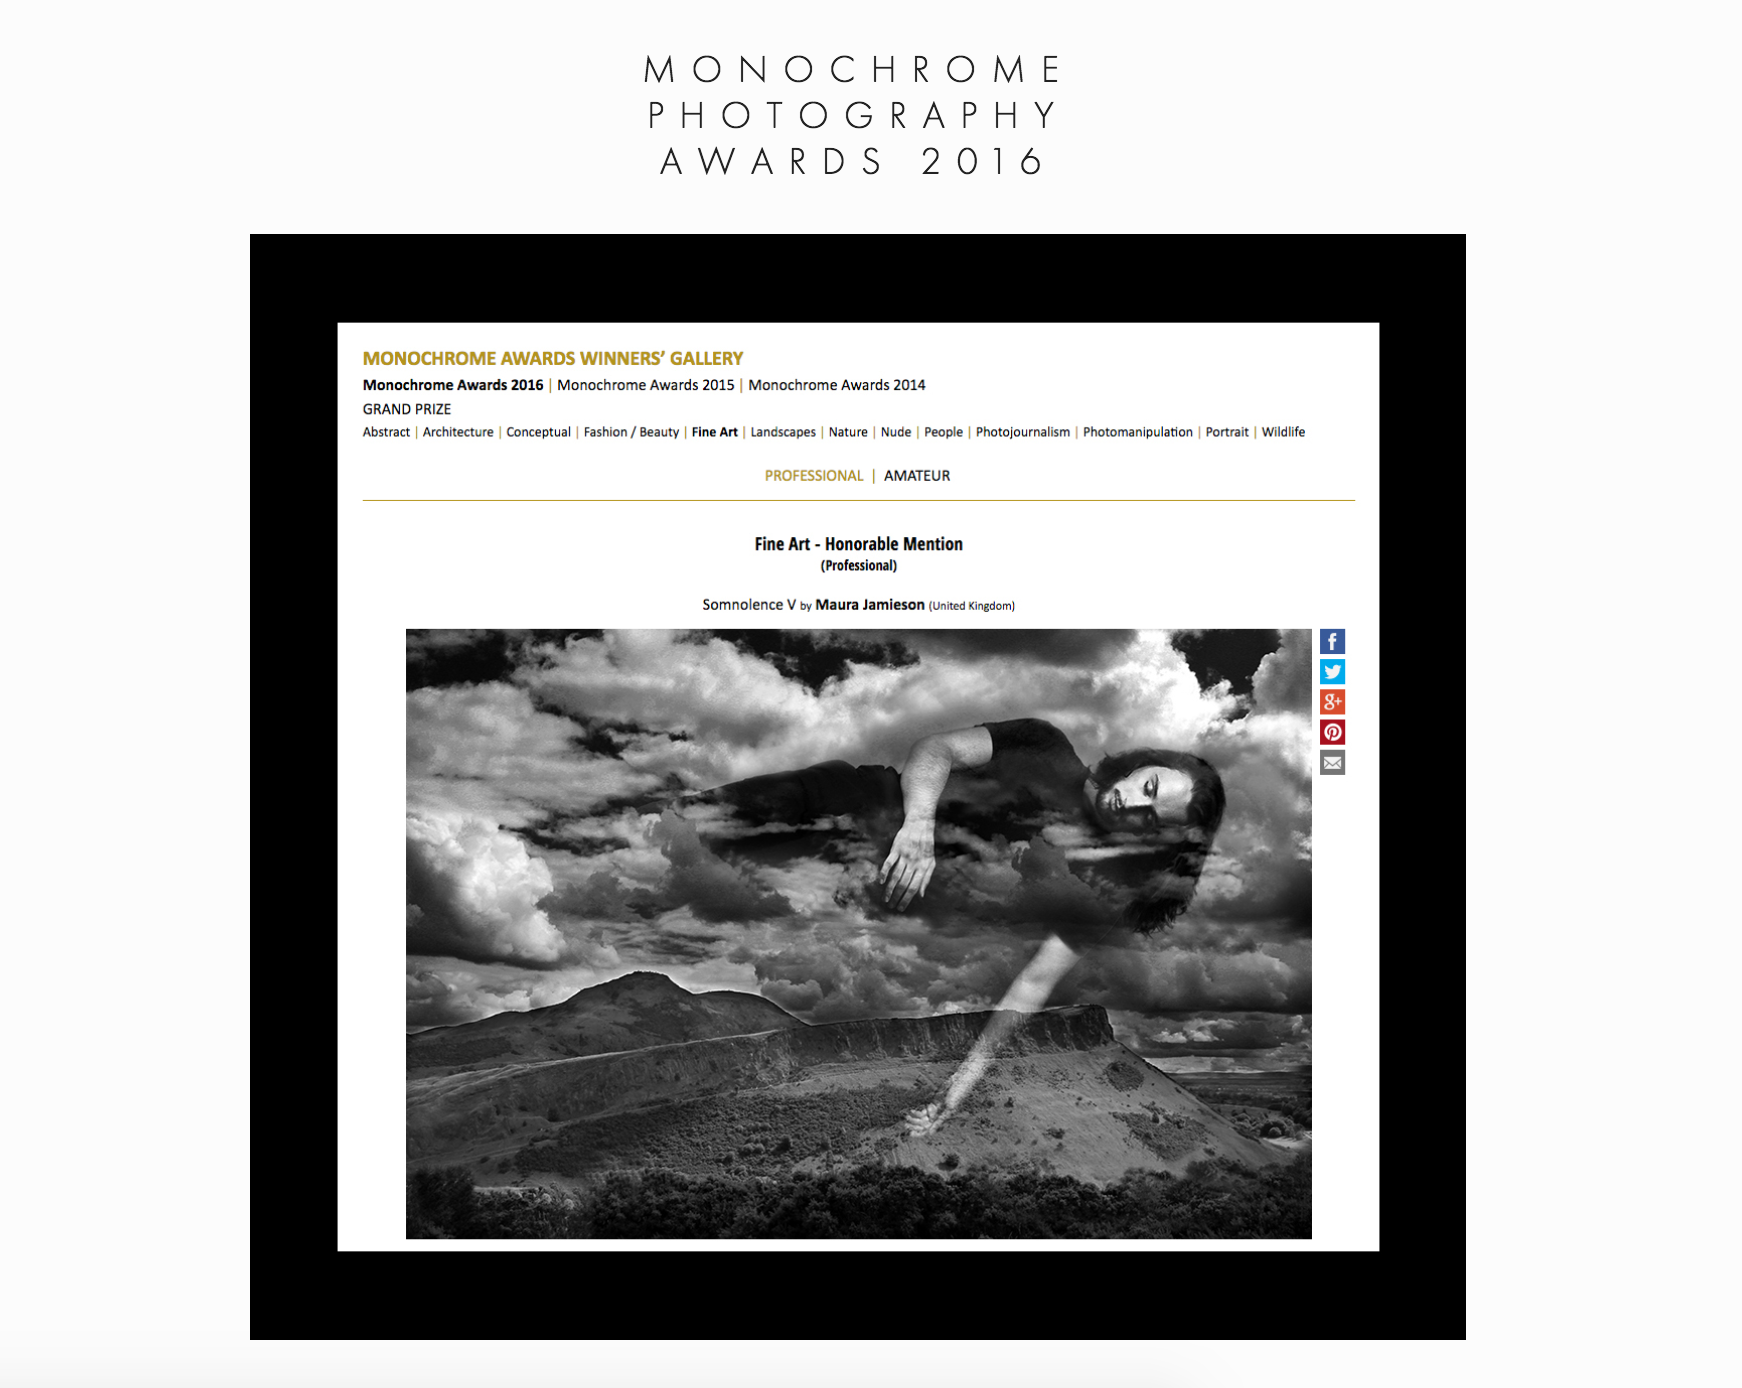 https://monoawards.com/winners-gallery/monochrome-awards-2016/professional/fine-art